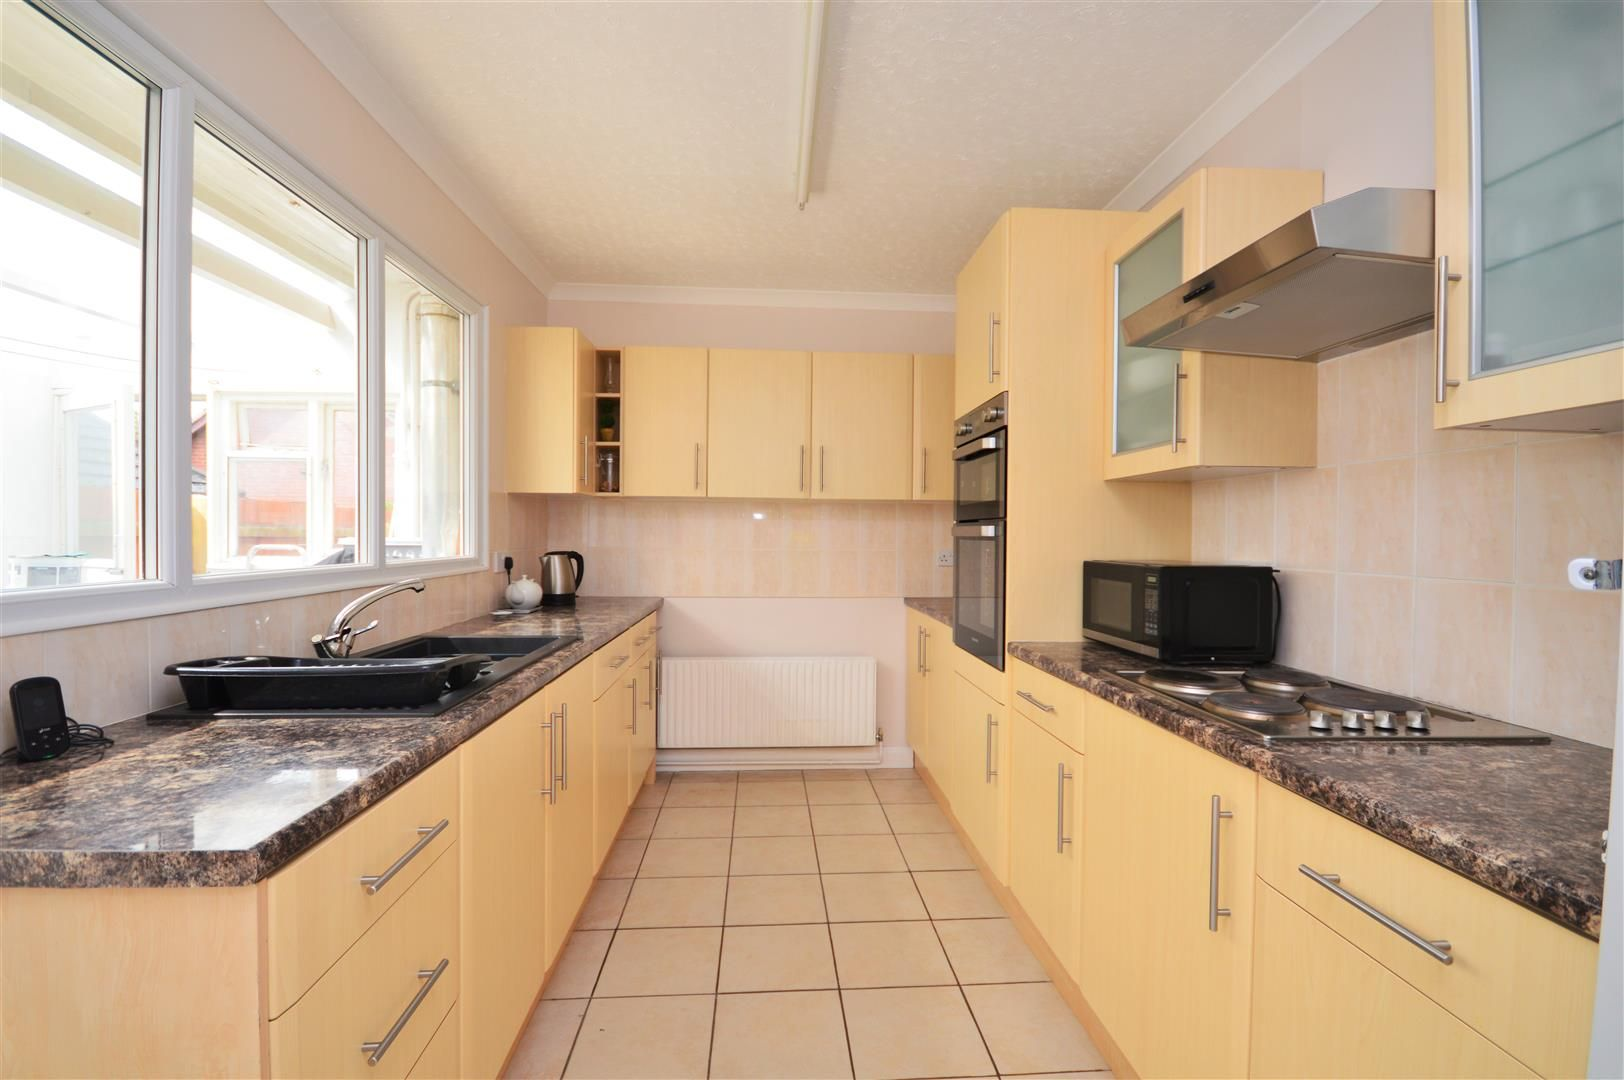 4 bed detached-bungalow for sale in Marden  - Property Image 5